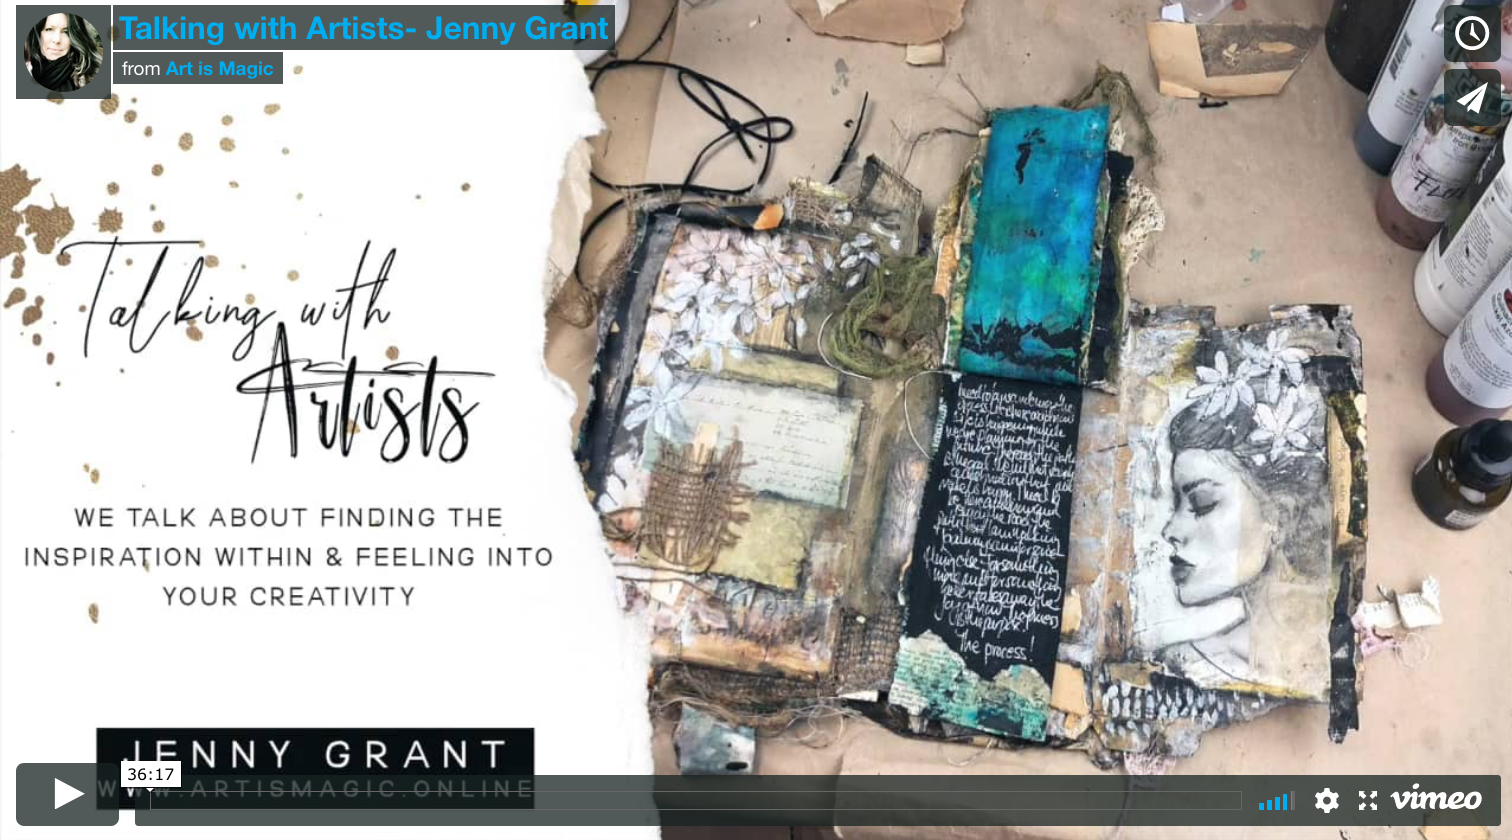 Talking with Artists Jenny Grant